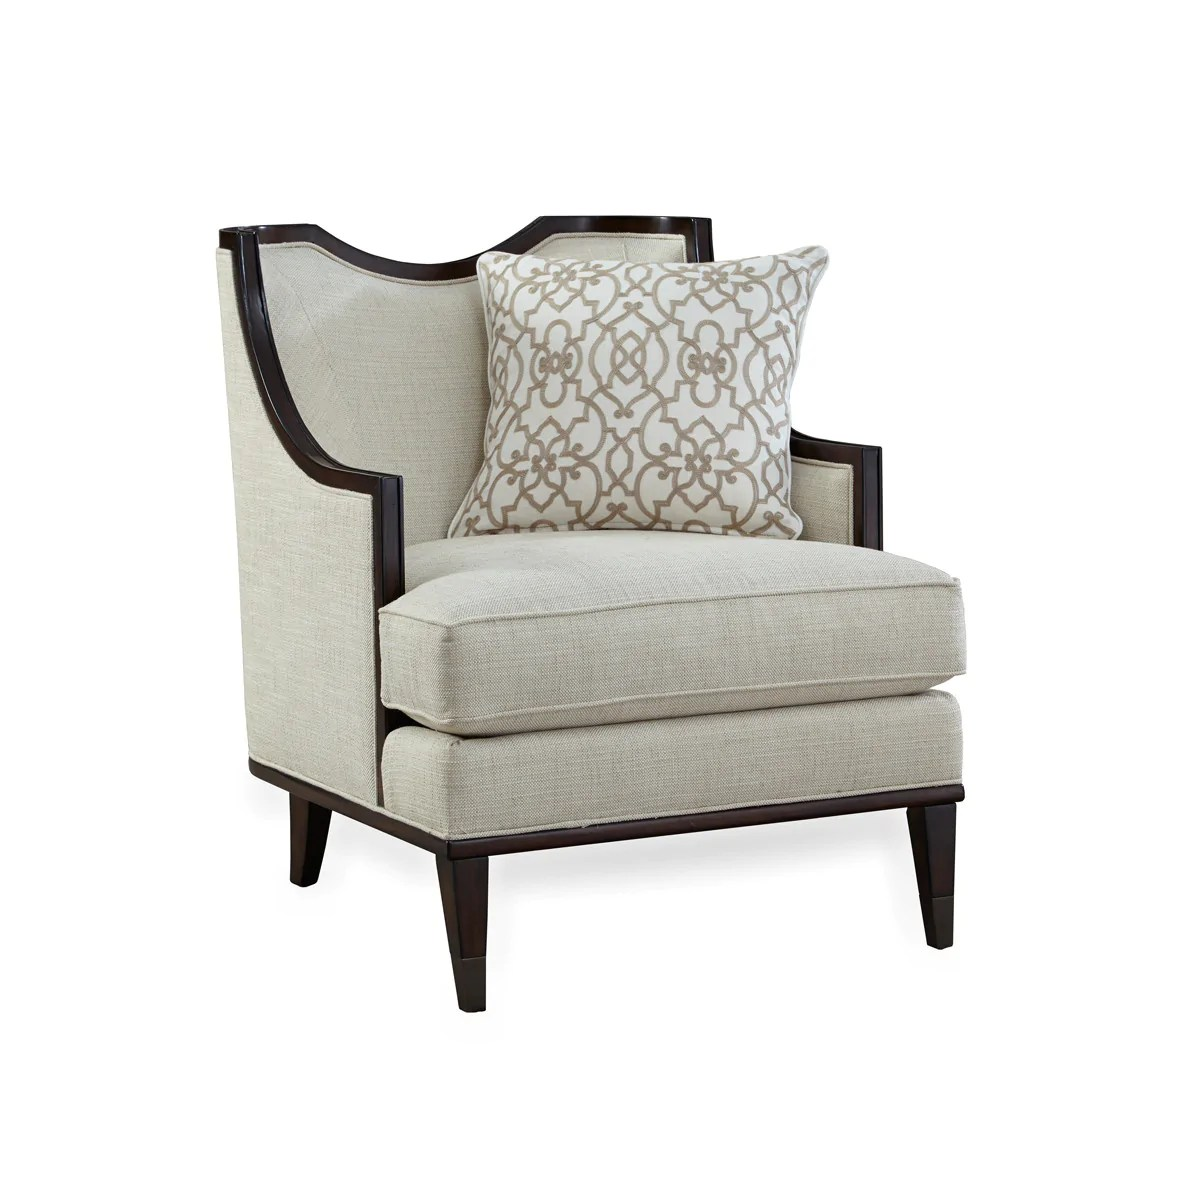 barletta sofa gray leather reclining occasional chair max sparrow